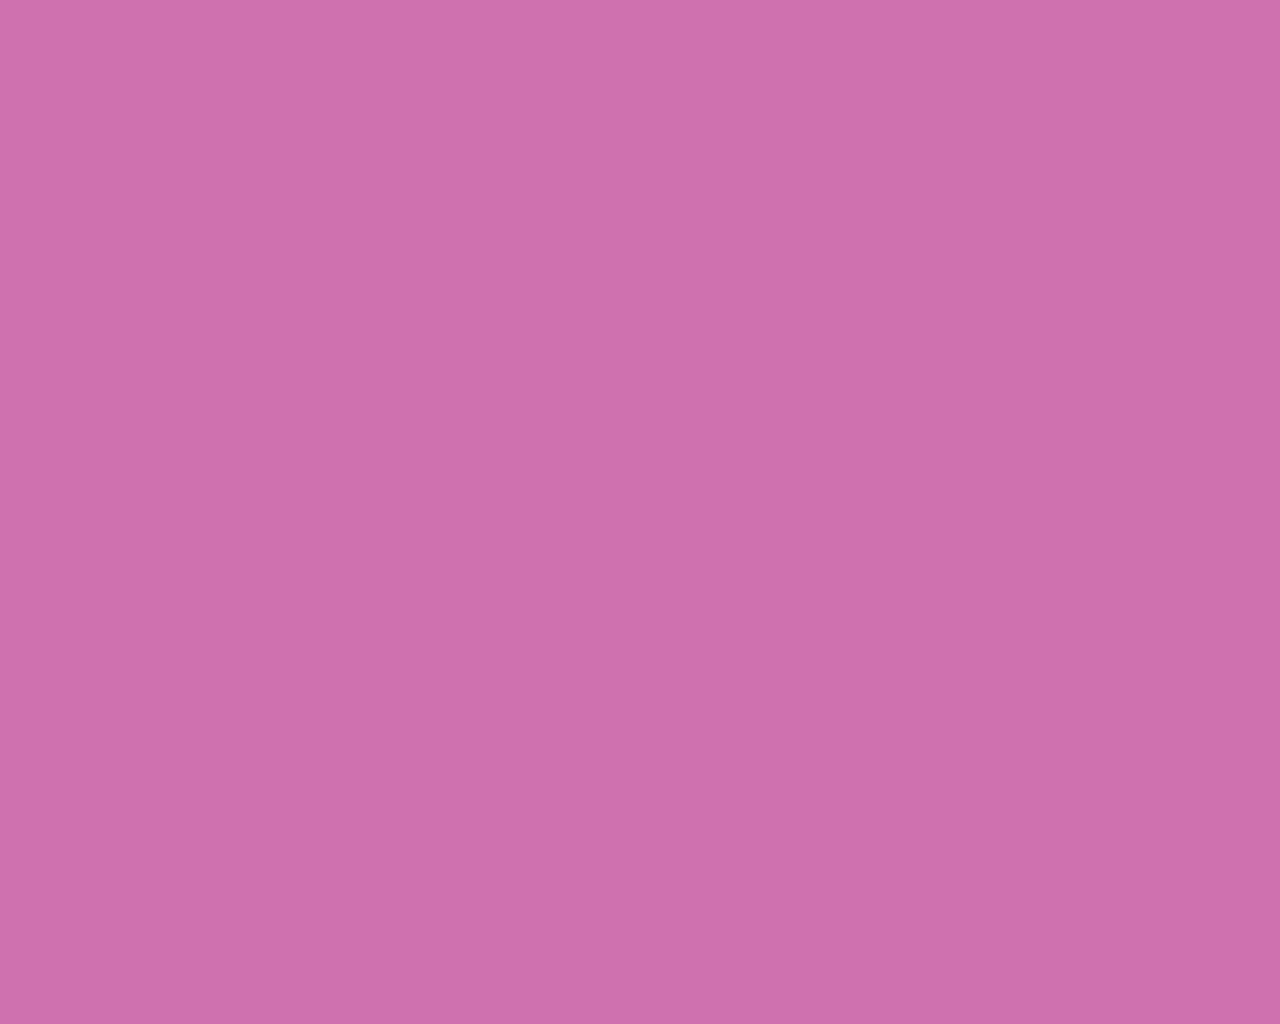 1280x1024 Sky Magenta Solid Color Background